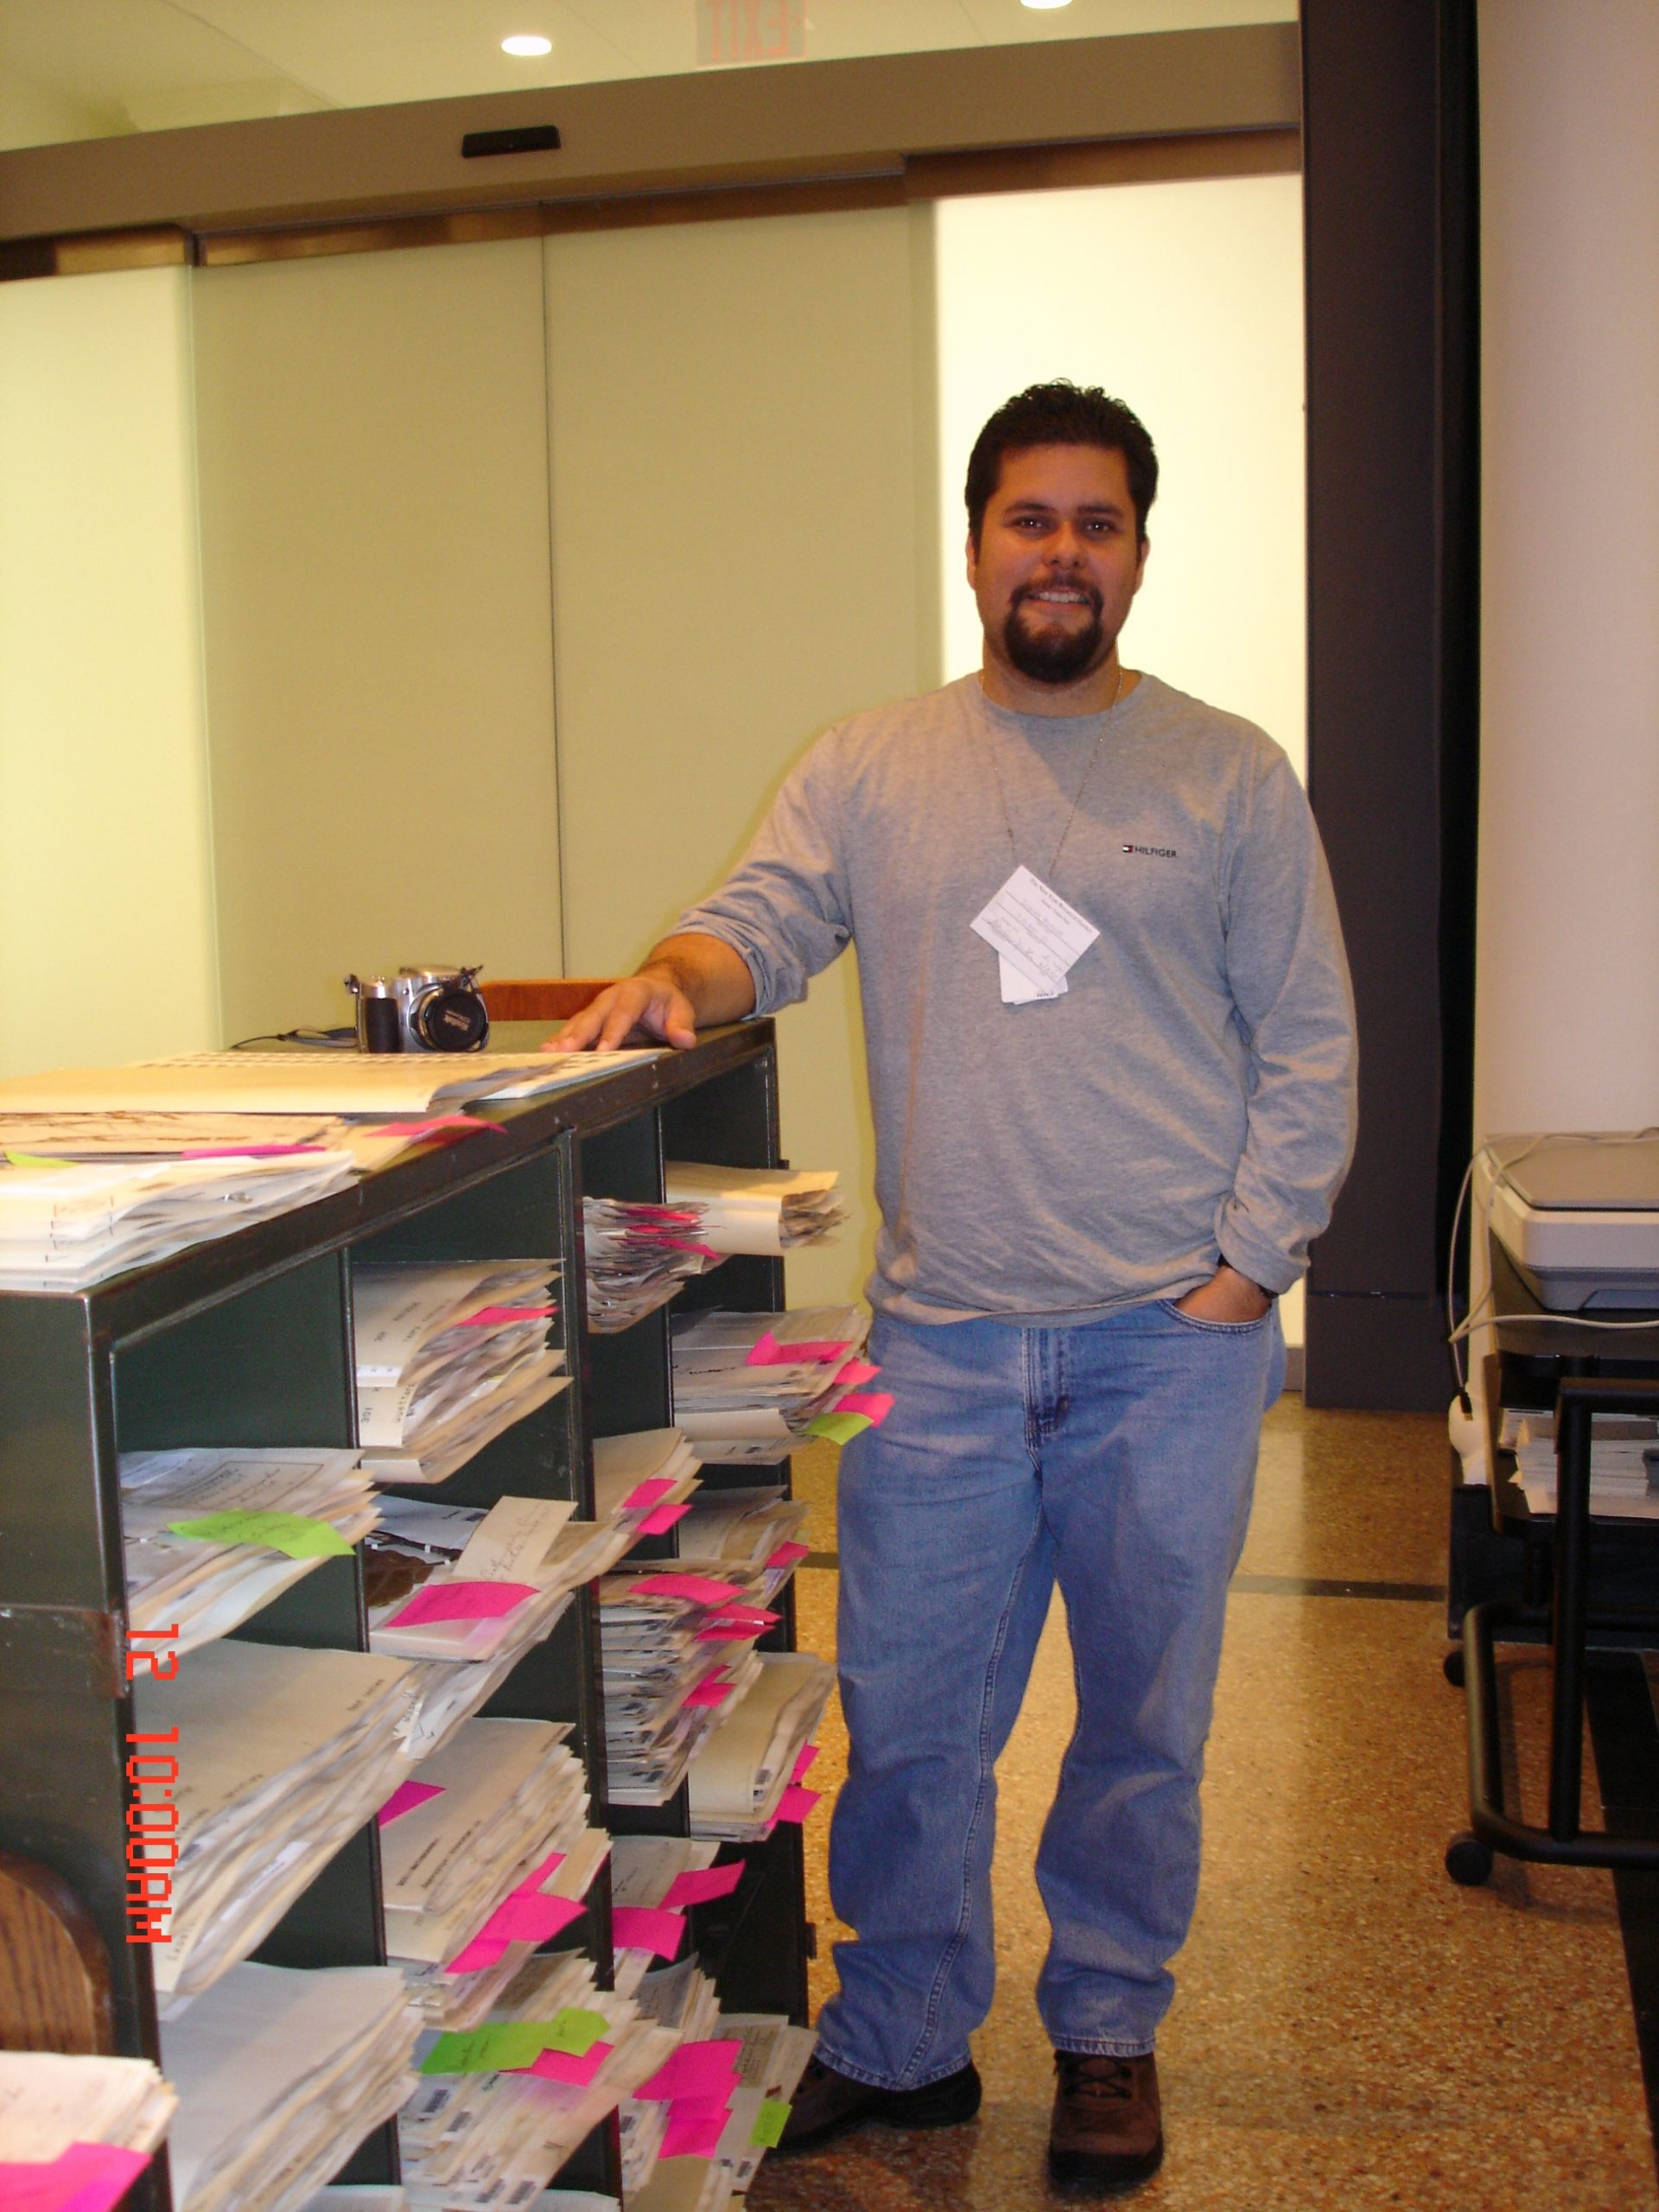 While working with other graduated students doing research on federally listed species (O. rhodoxylon) or narrow endemics (Randia portoricensis) Omar collaborated on a project to digitize historical collections from Puerto Rico deposited at the New York Botanical Garden.